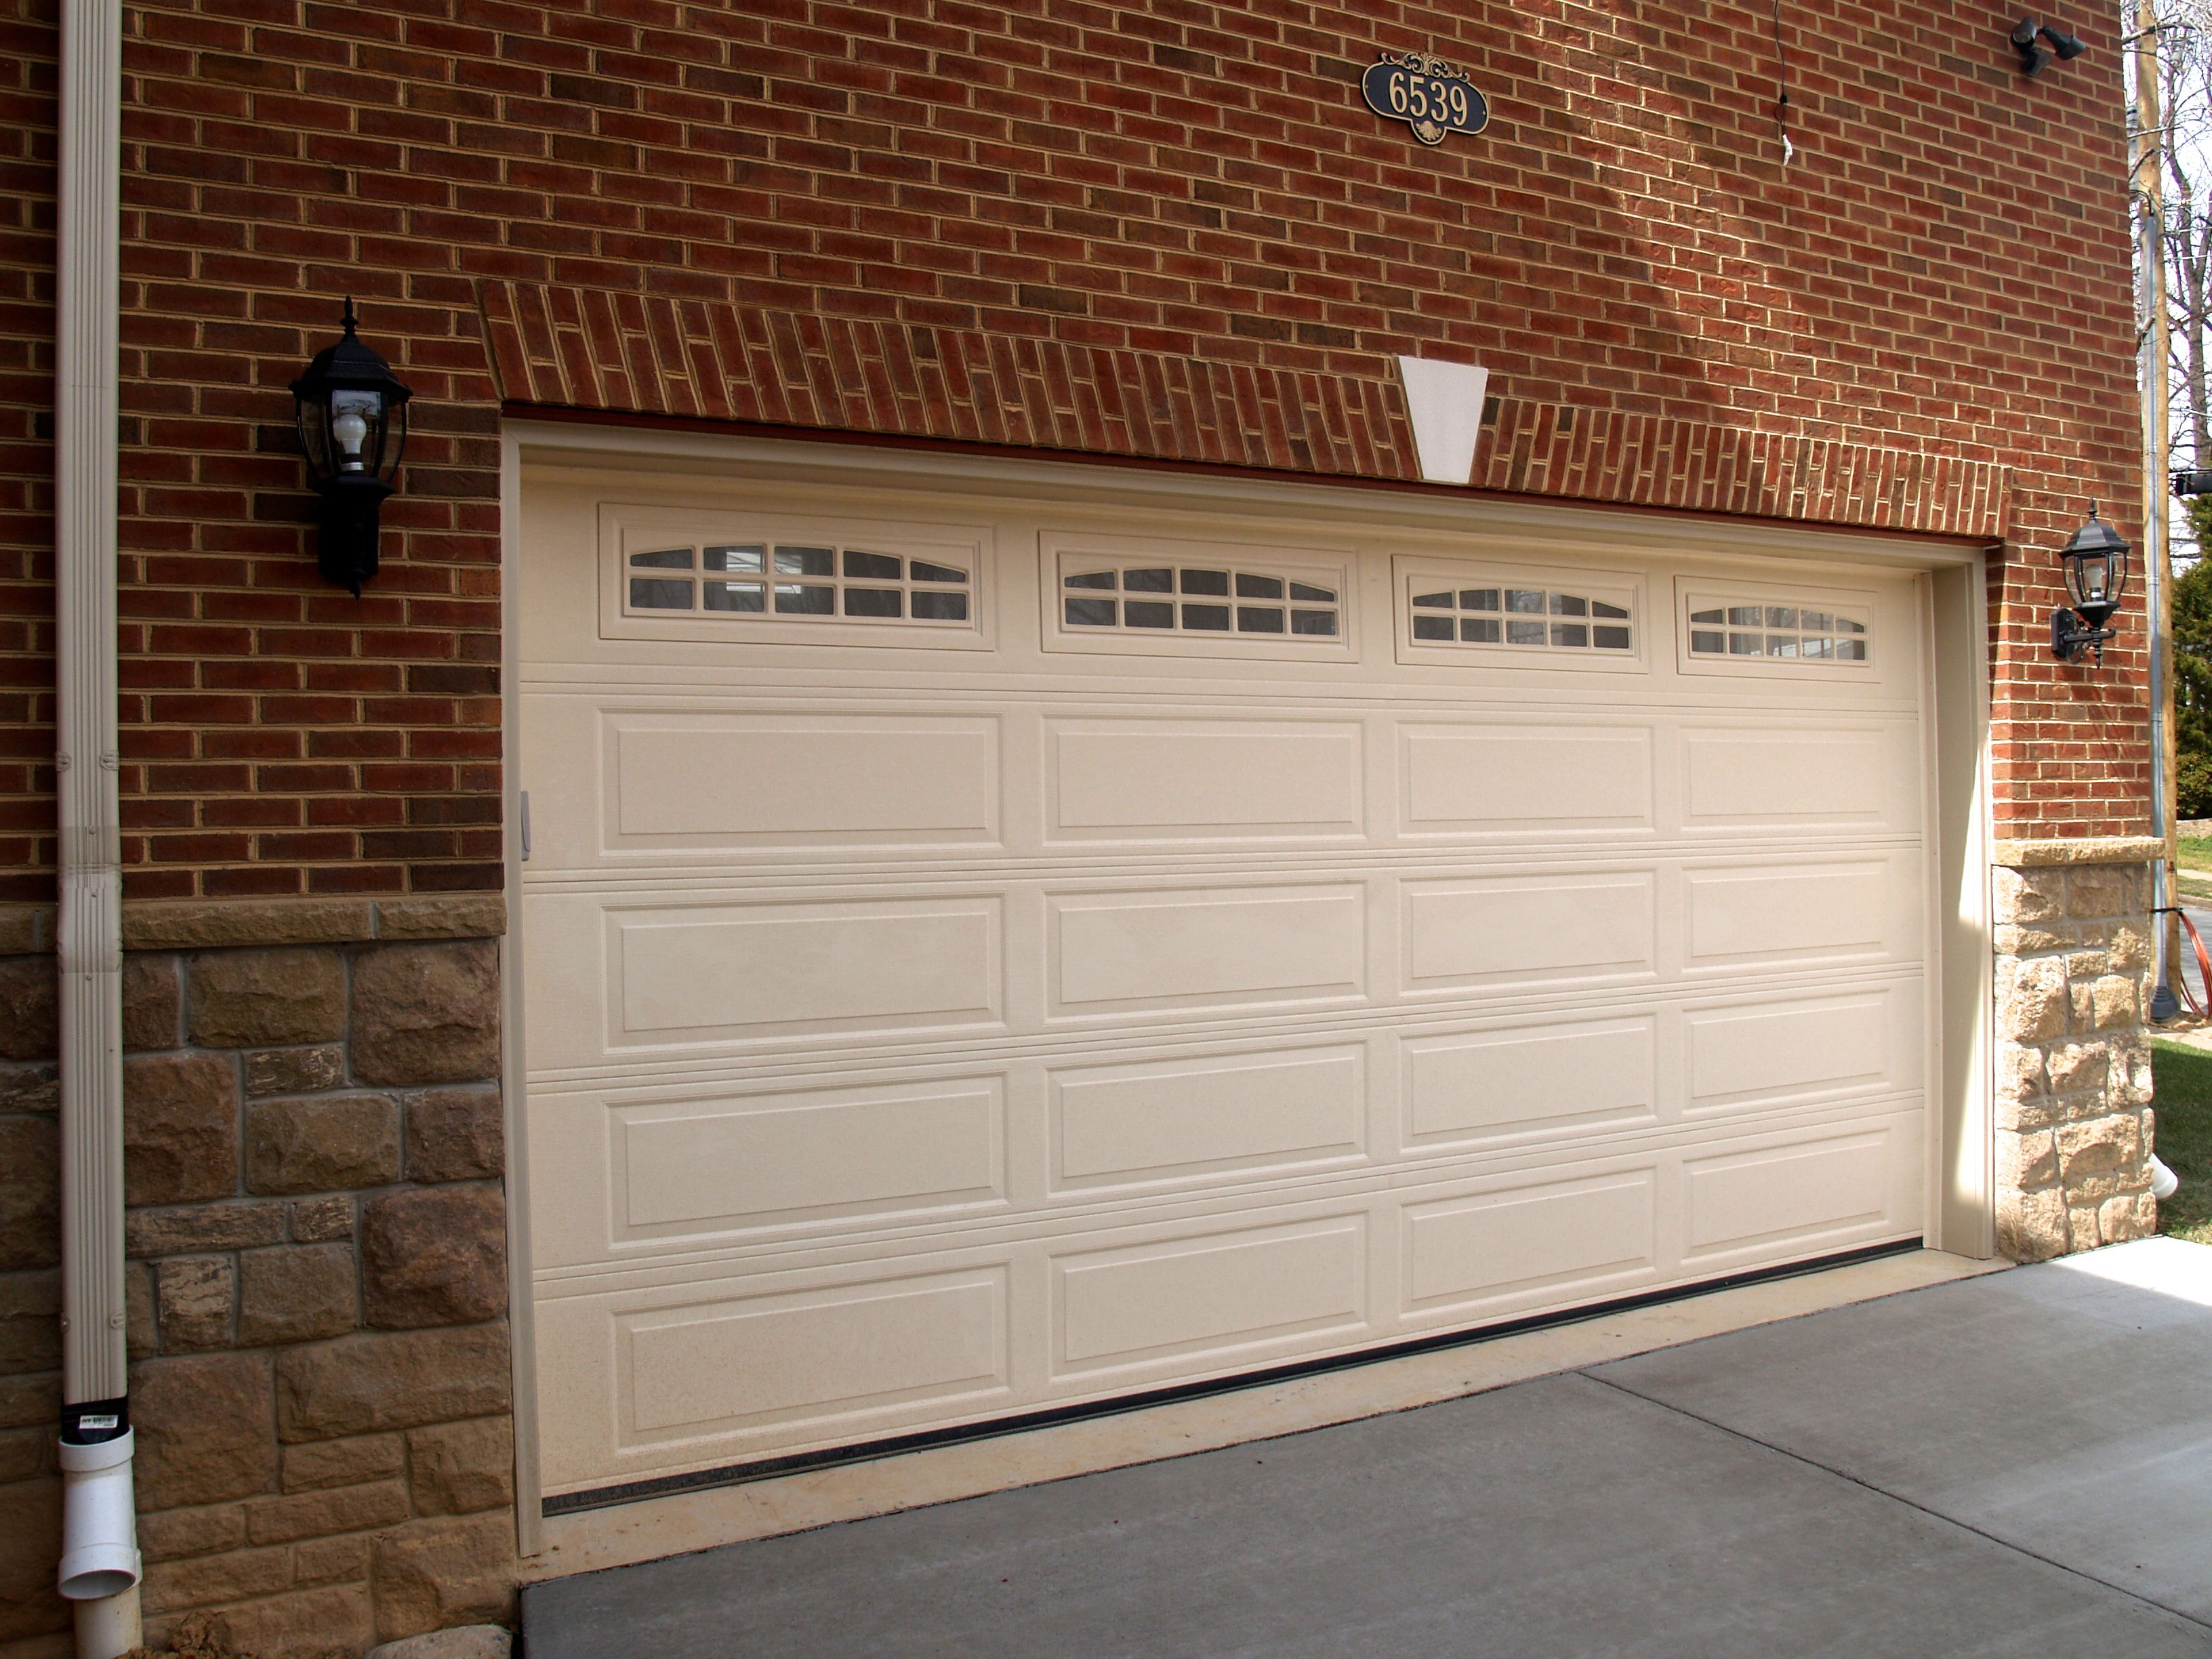 Visit Showroom Partners Online For Further Information On Wayne Dalton Garage Doors Garage Doors Wayne Dalton Garage Doors Interior And Exterior